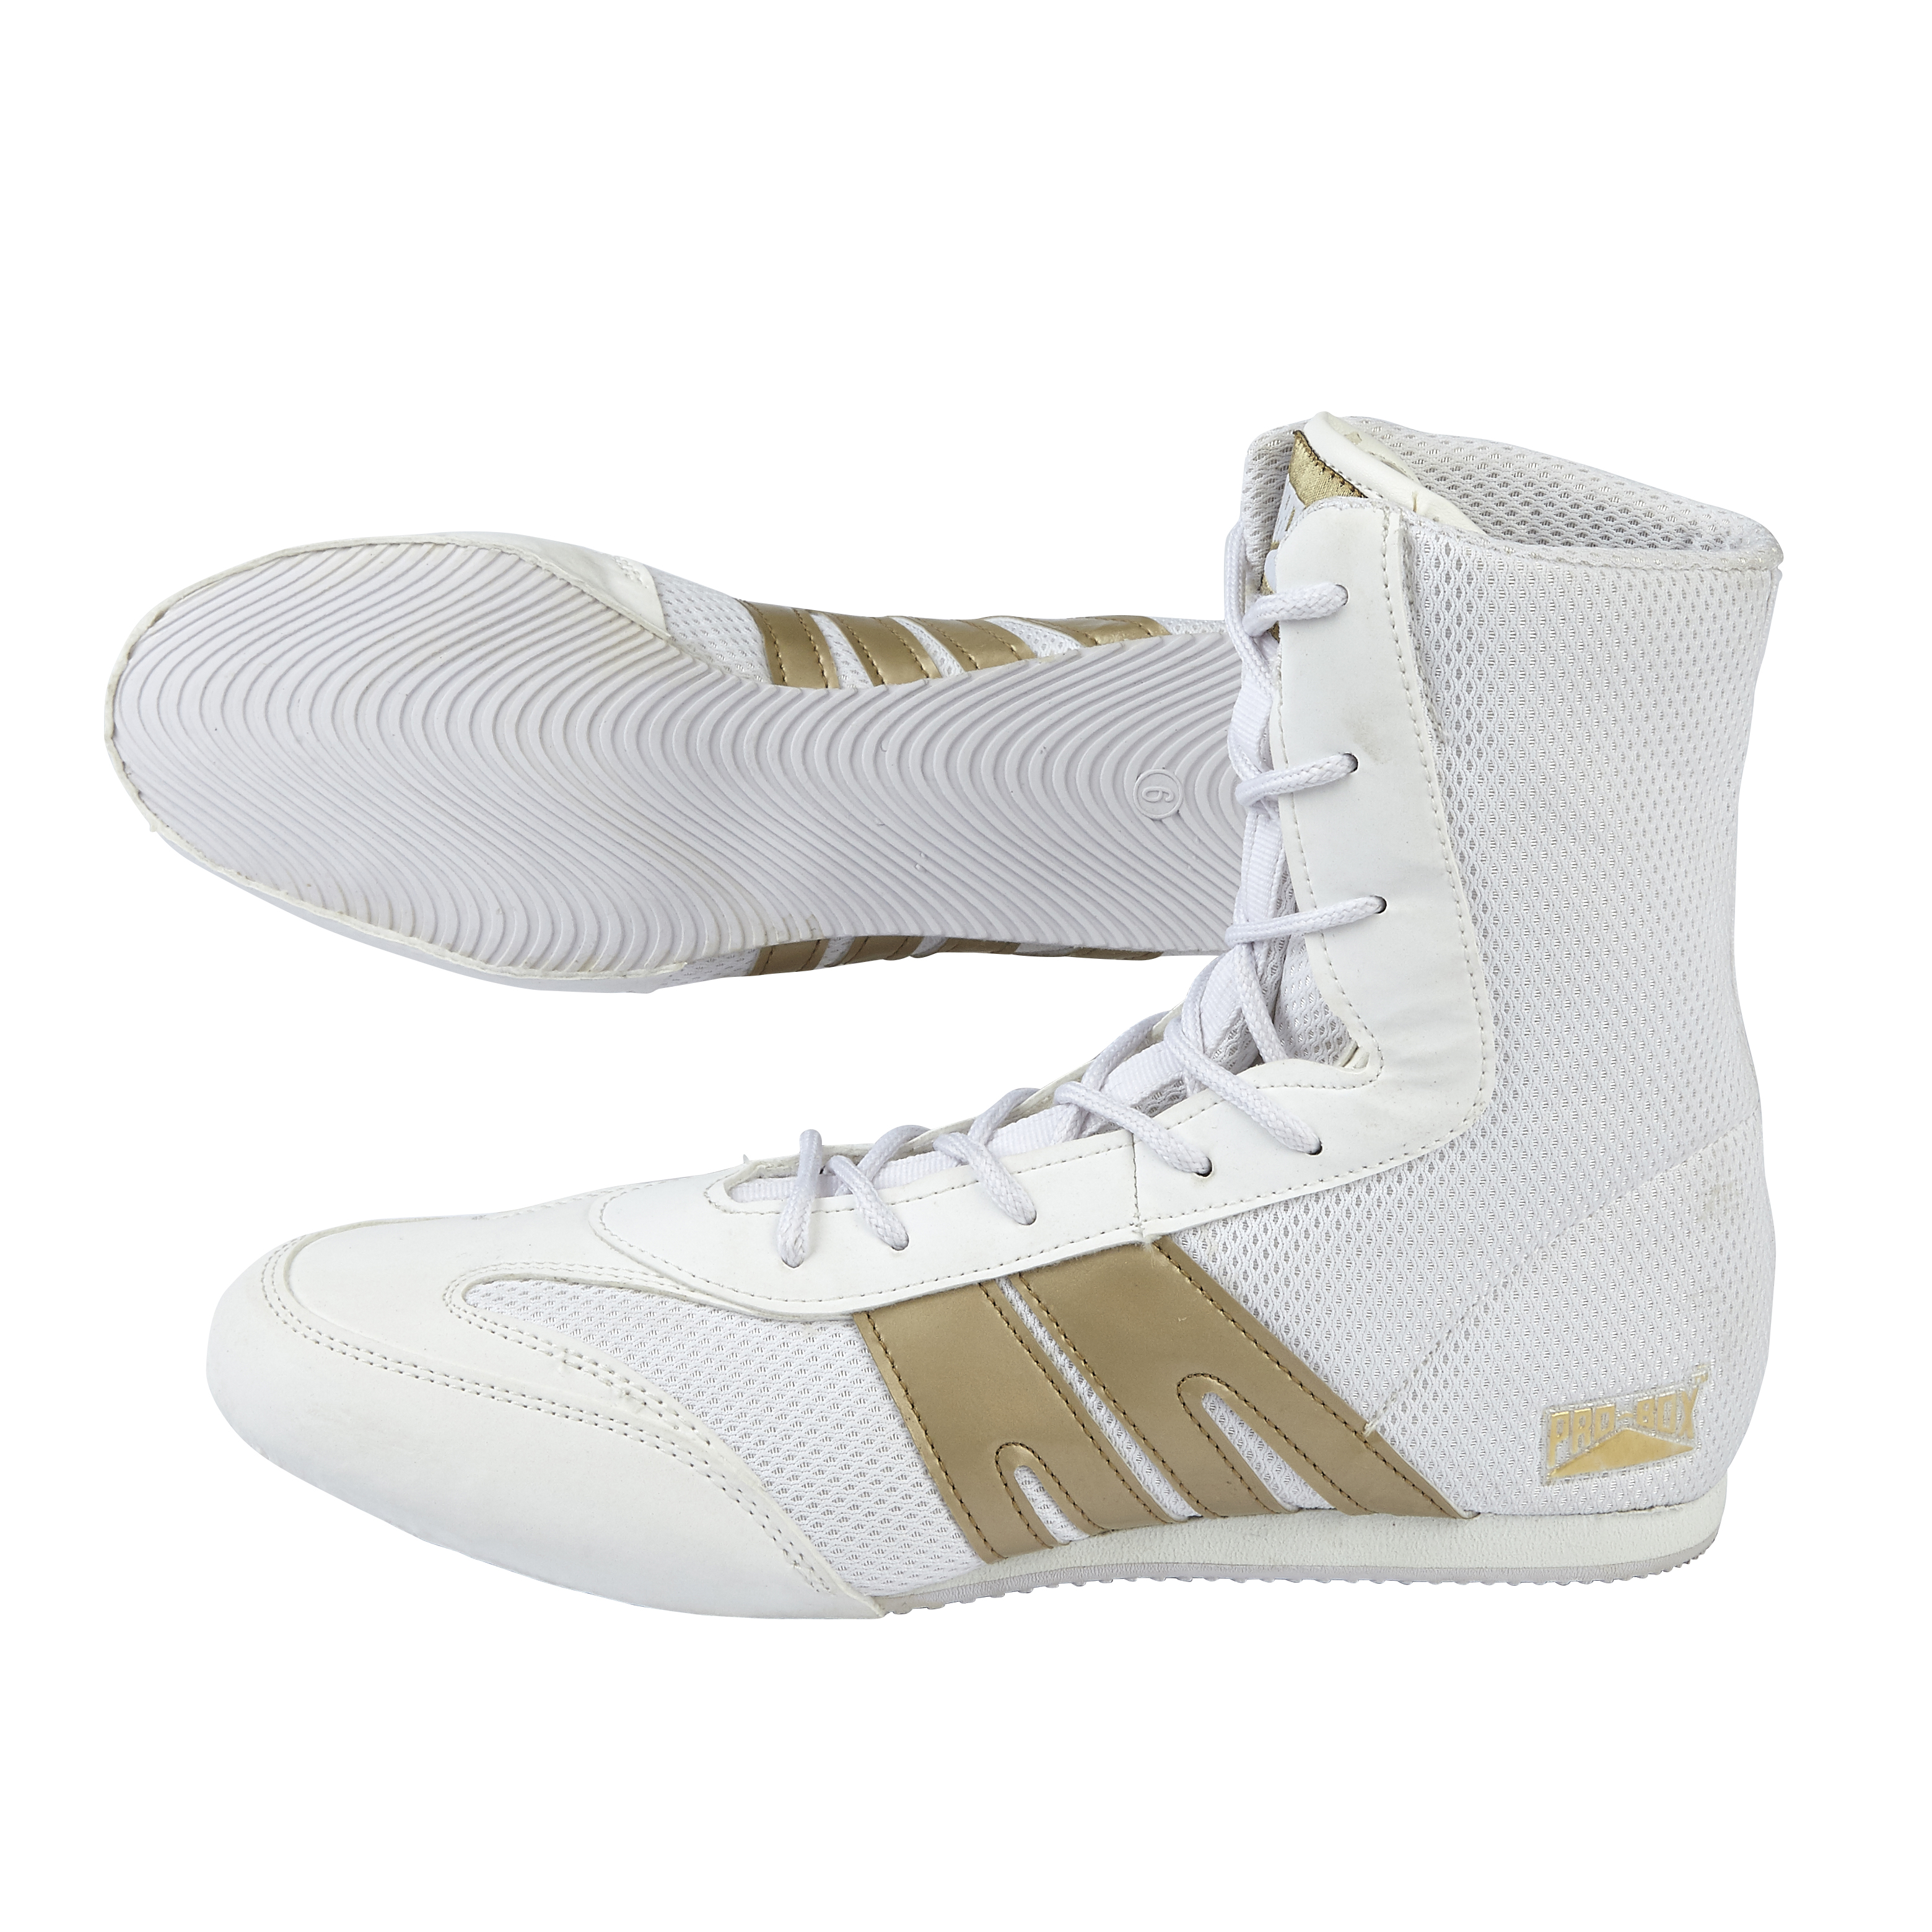 Boots White Gold